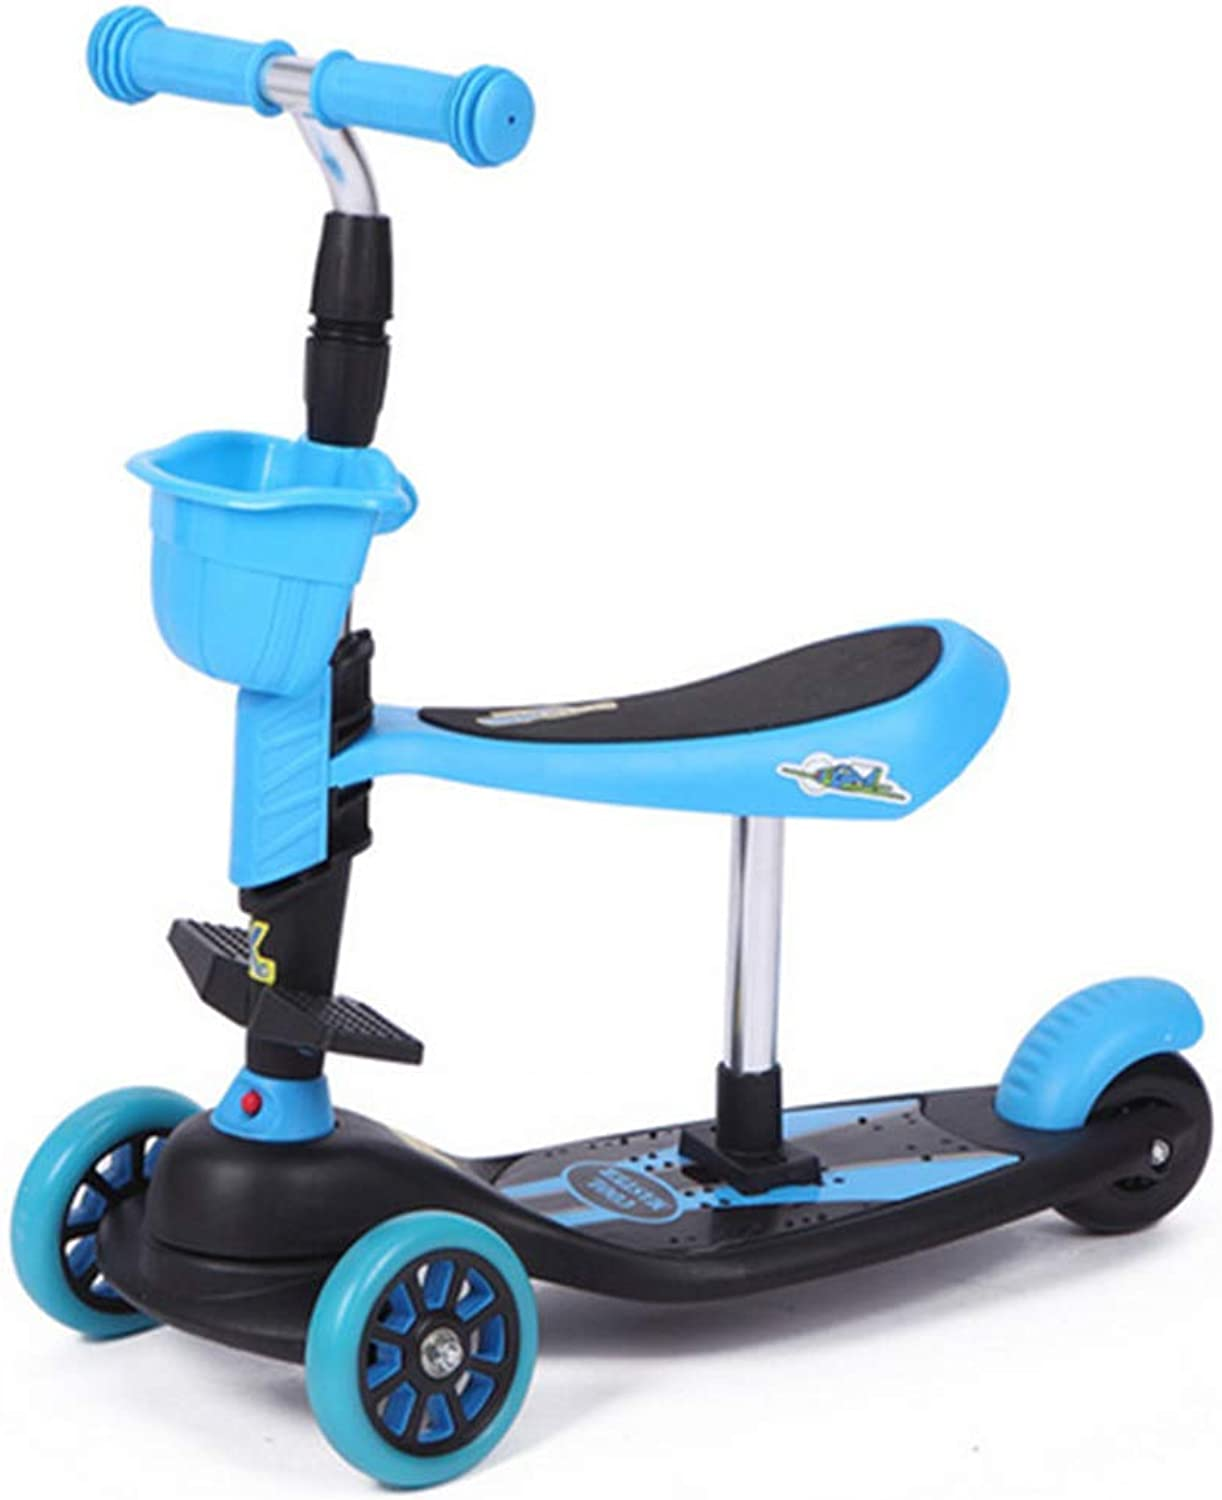 3In1 3 Wheels Kick Scooter With Removable Seat For Kids Kids Scooter With ExtraWide PU Flashing Wheels